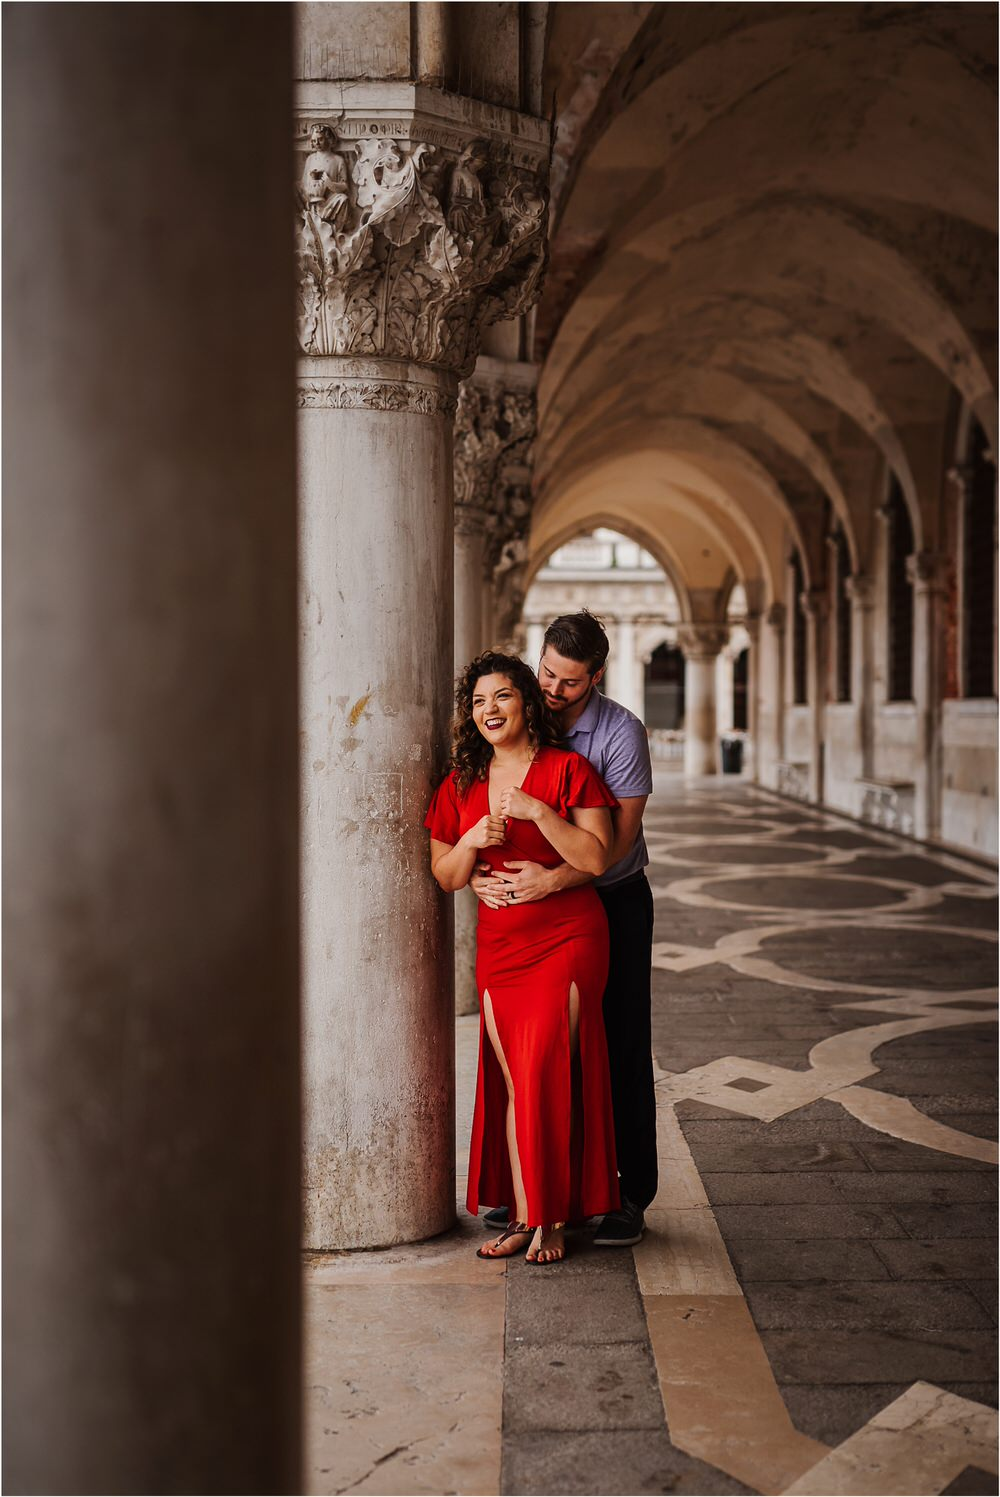 venezia venice wedding photographer photography real honest moody lookslikefilm italy italia matrimonio amore photography fotograf 0044.jpg